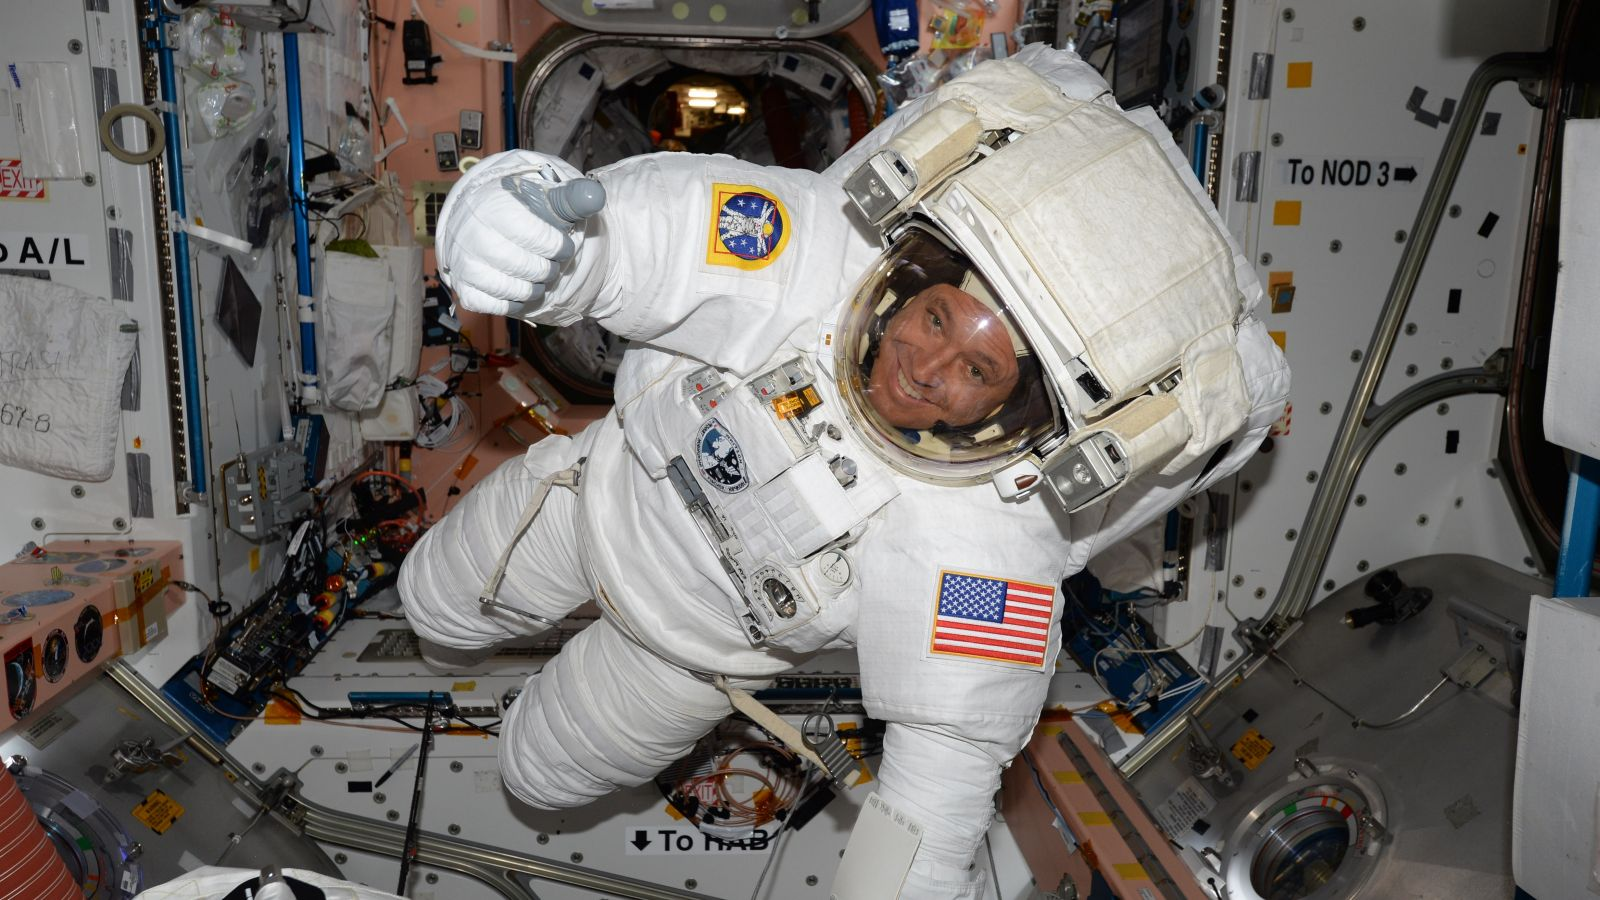 Watch 200th ISS spacewalk on Friday